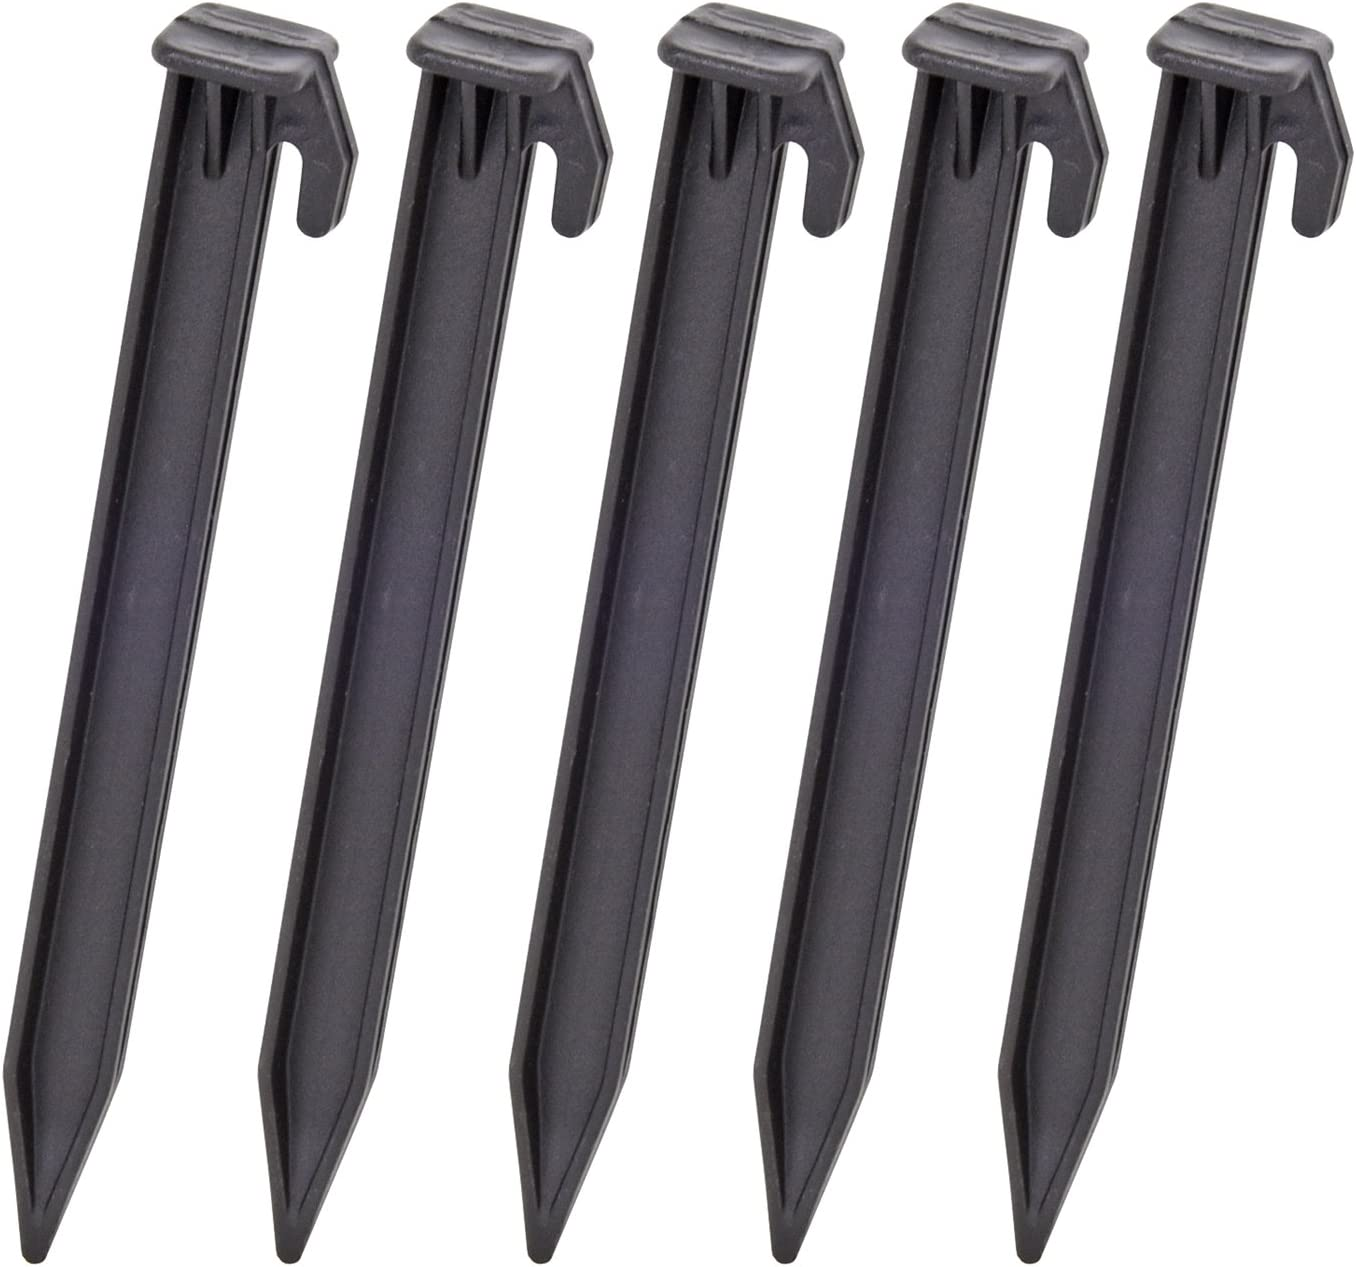 Black Colour 5 in a Pack VOSS.farming Electric Fence Netting Spikes 15cm